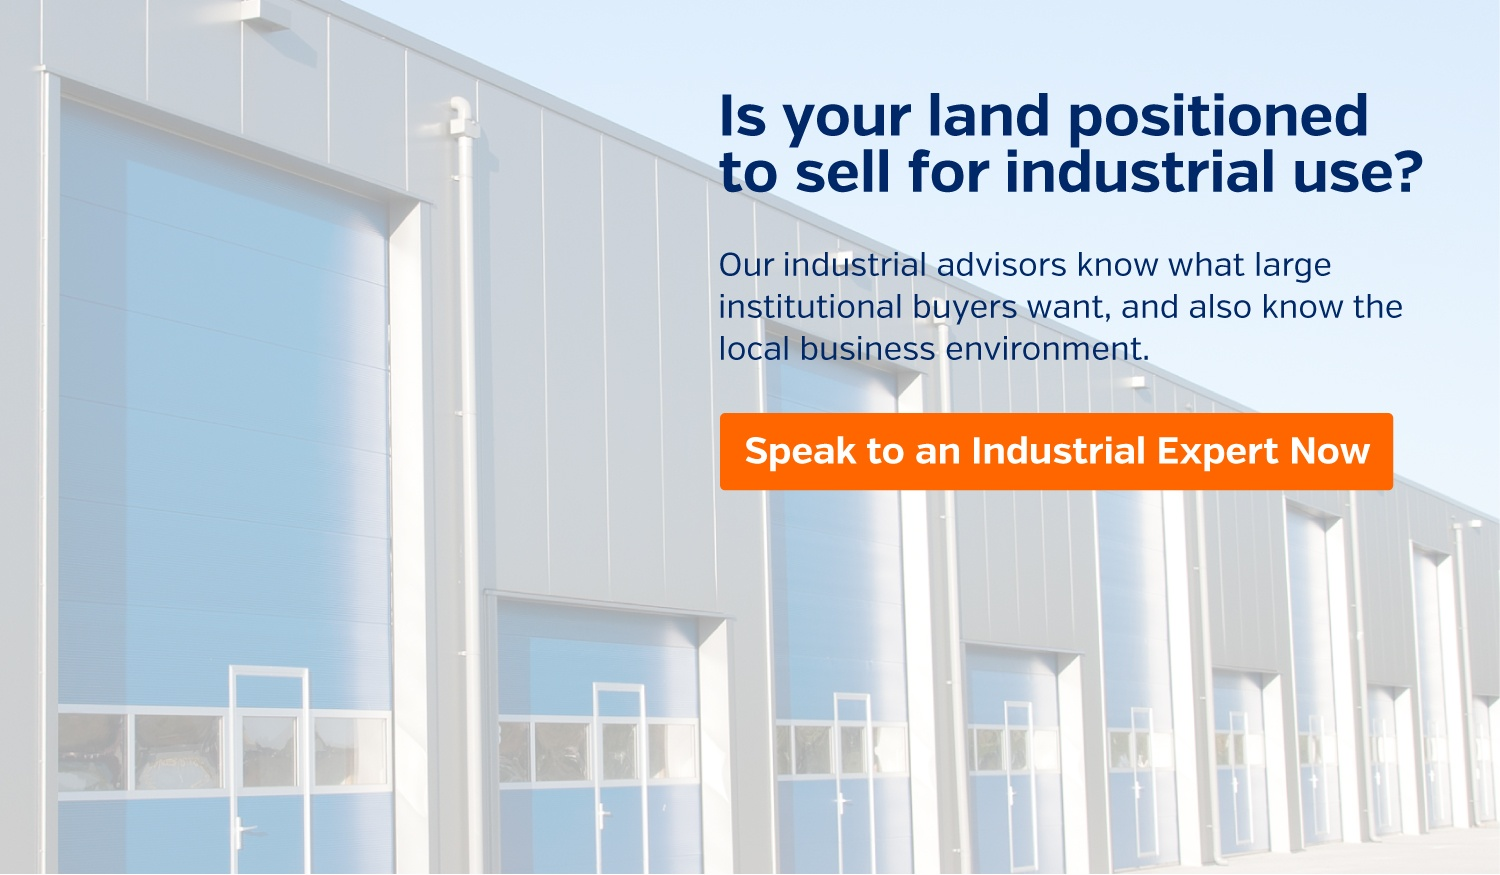 Graphic - Is your land positioned to sell for industrial use